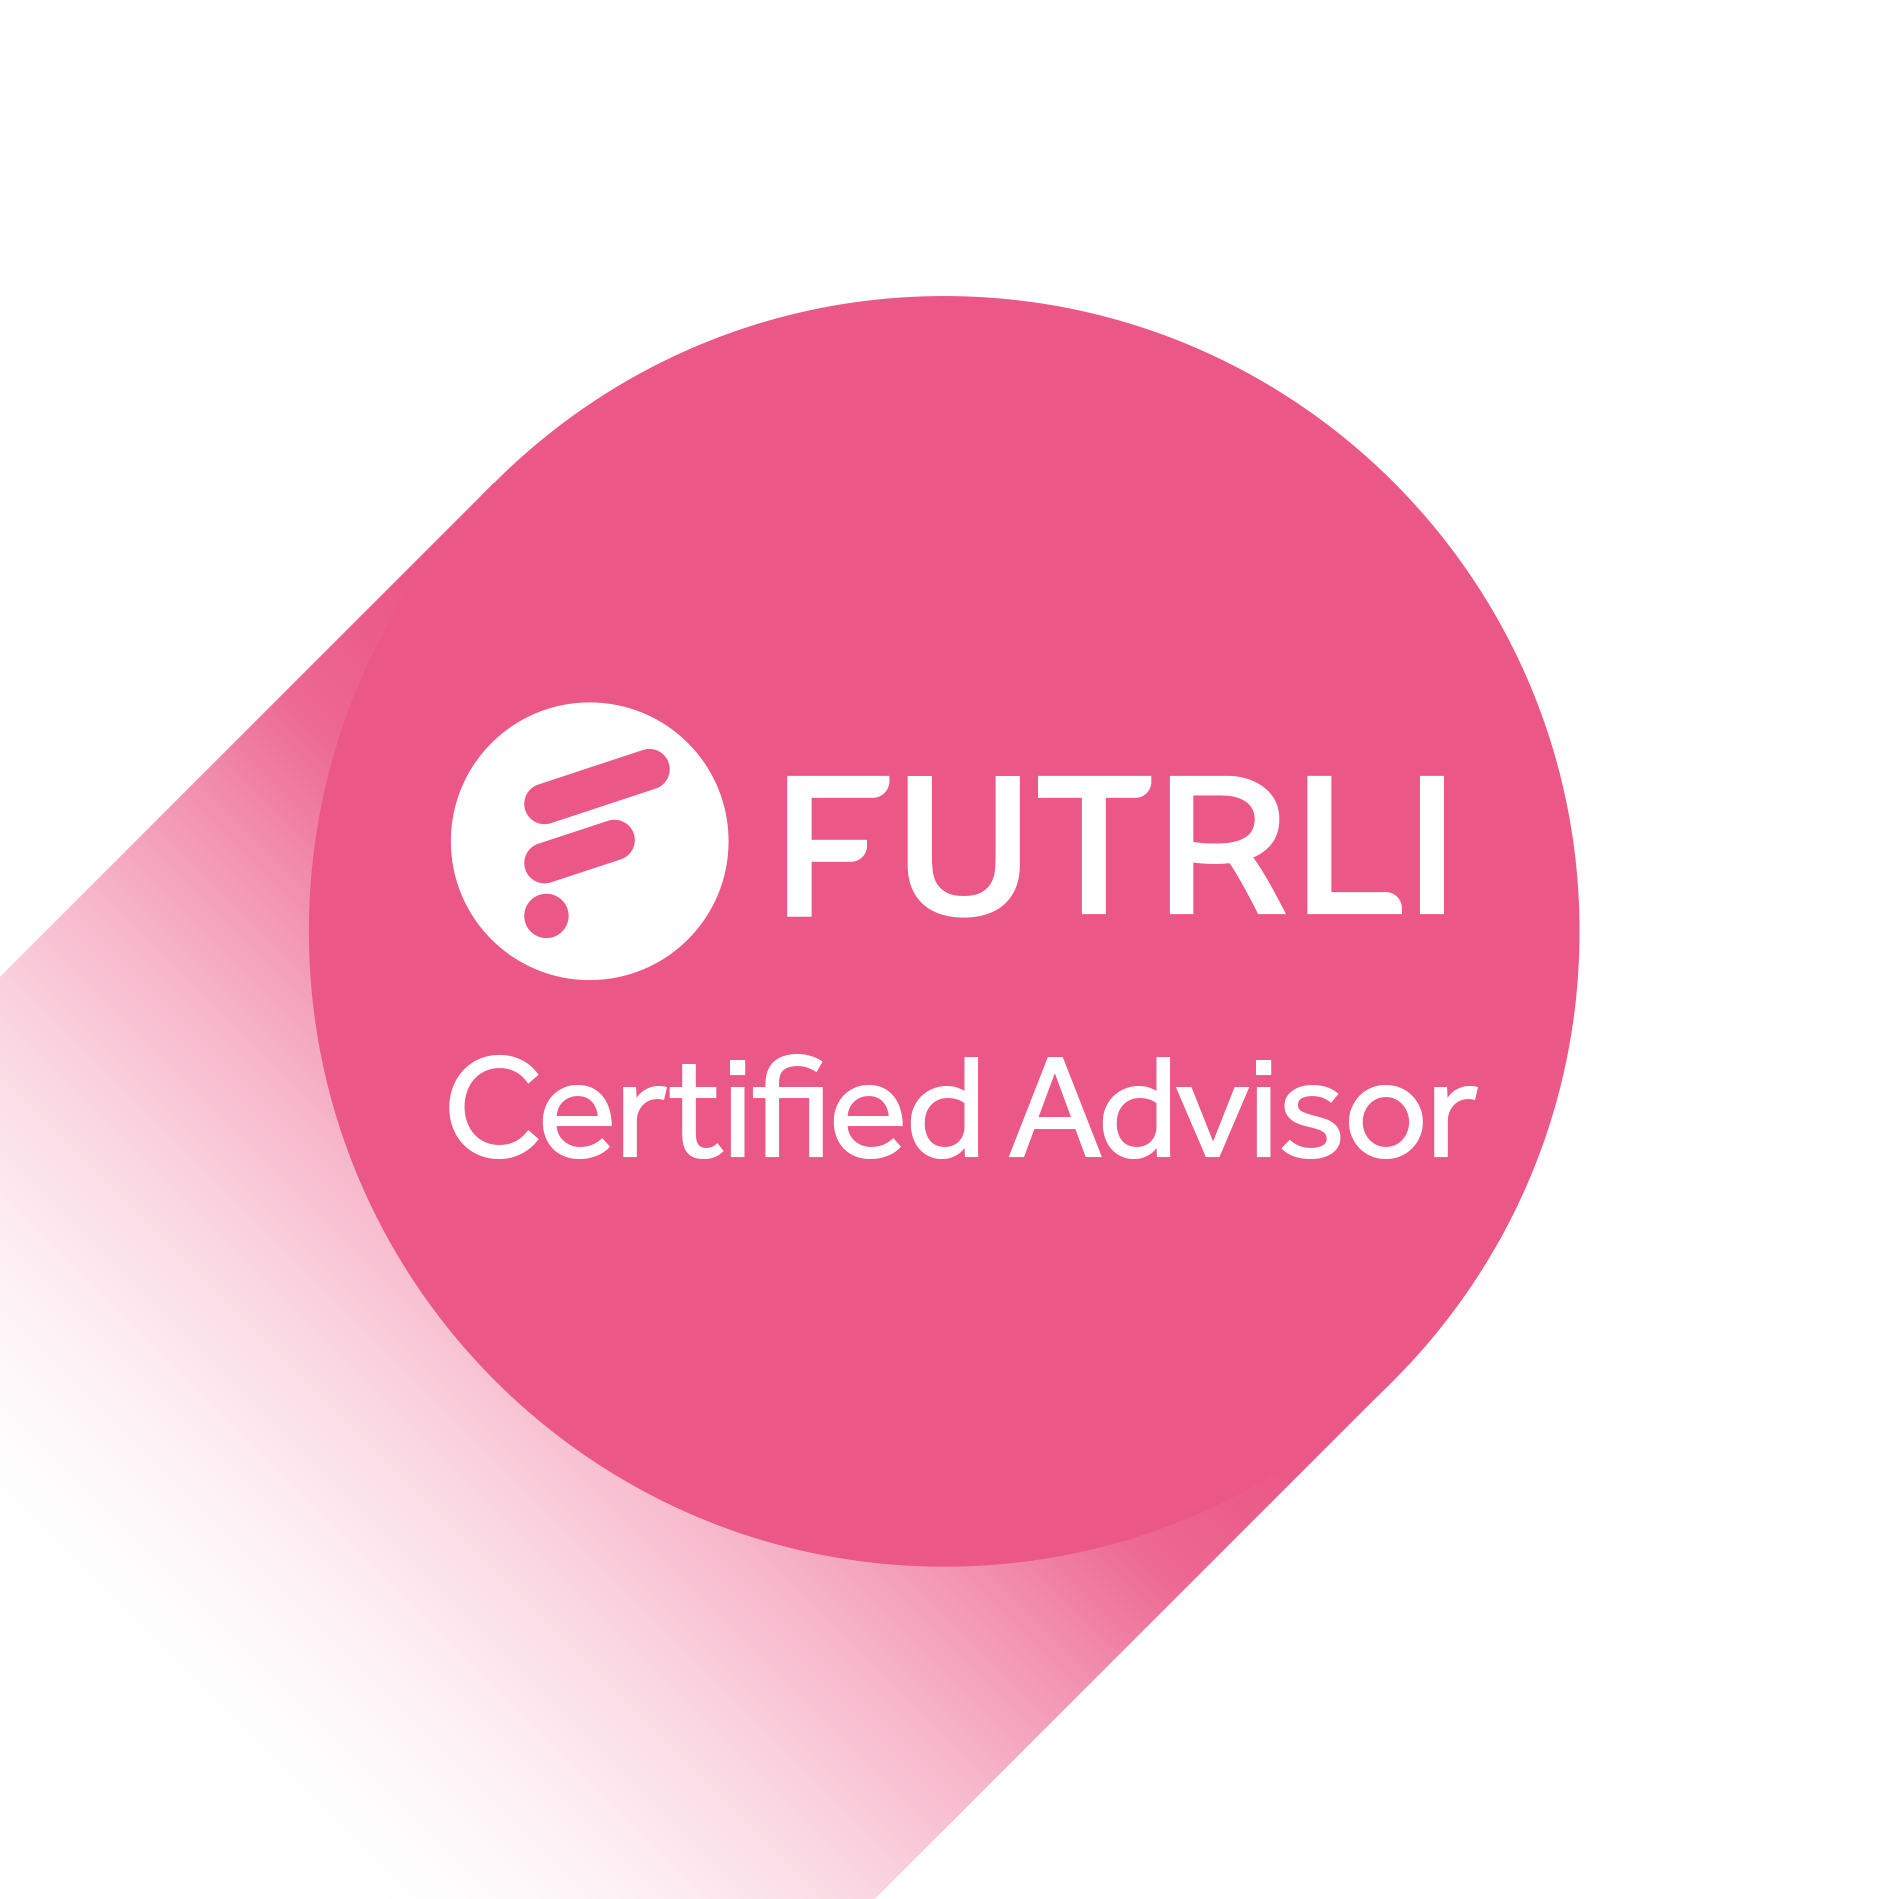 Futrli Certified Advisors